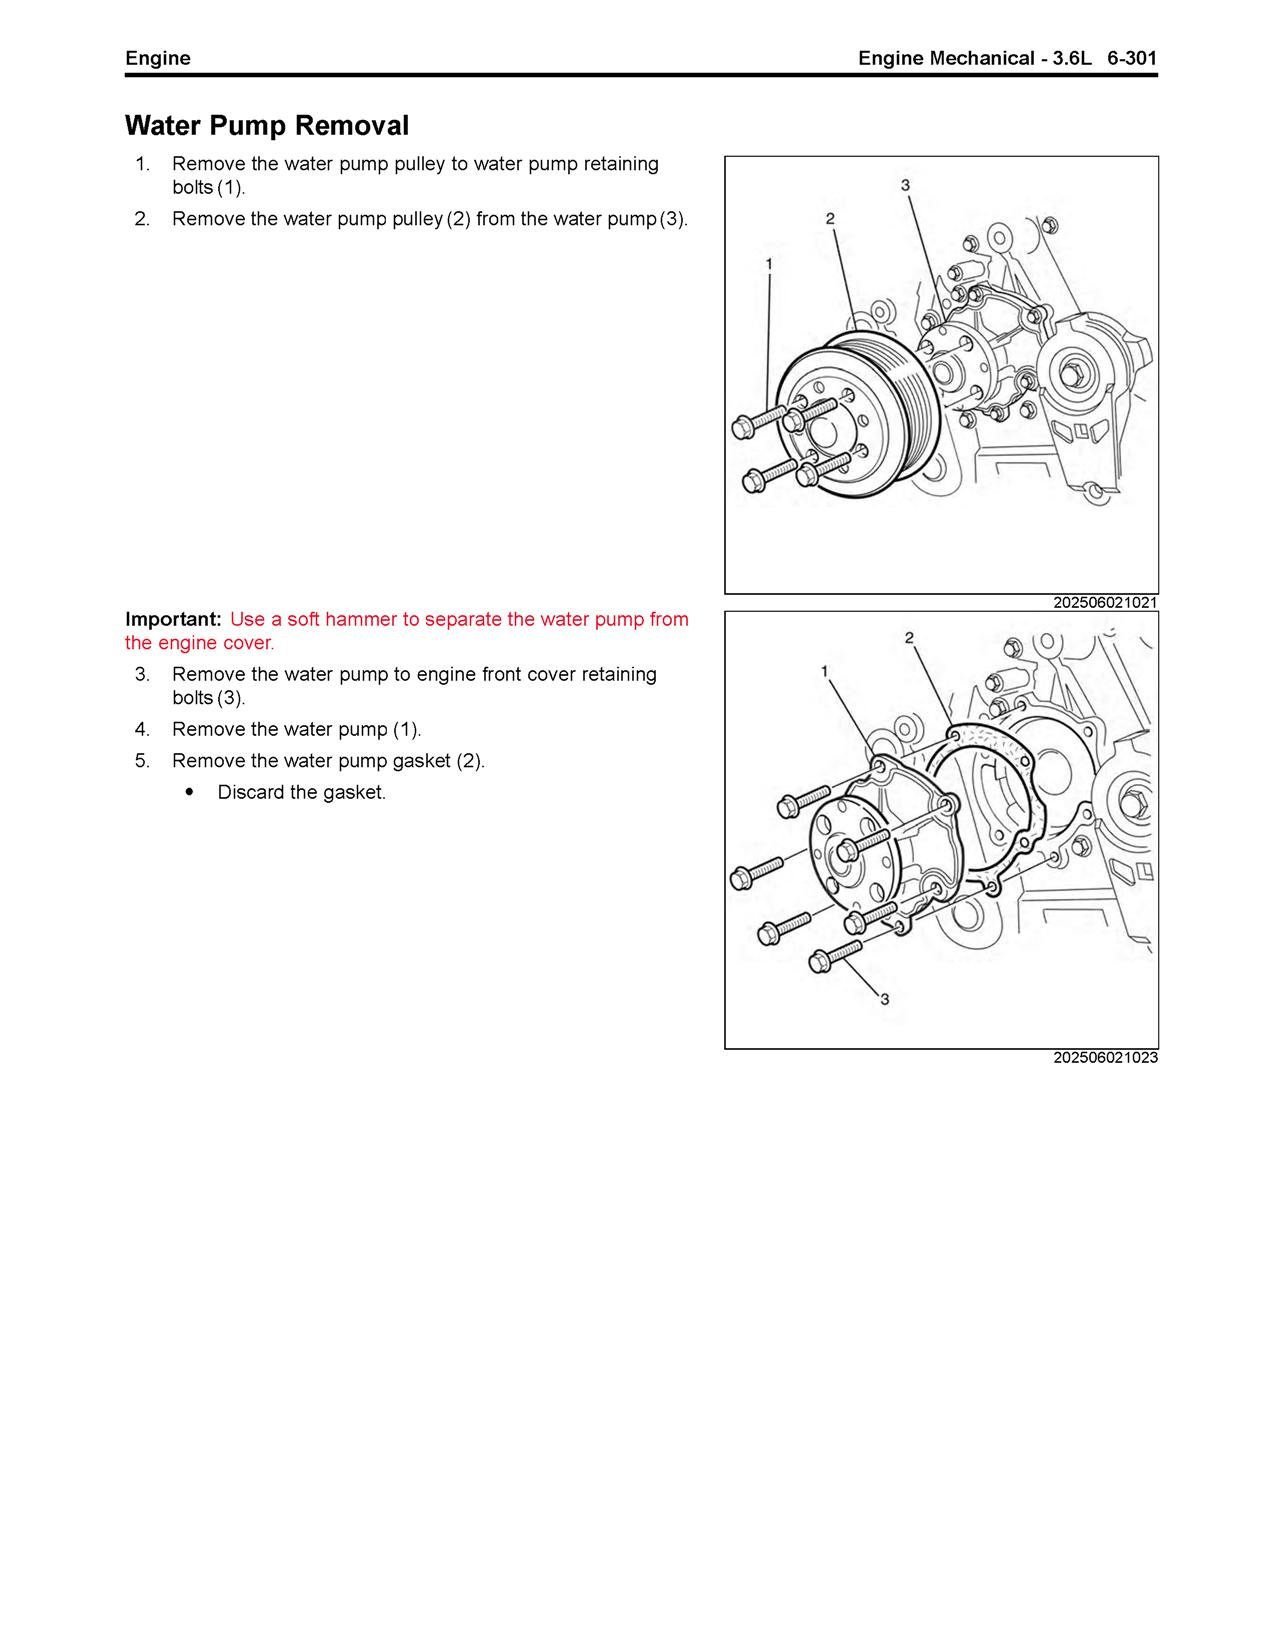 How Do I Change The Water Pump On My 2005 Vz Alloytec 6